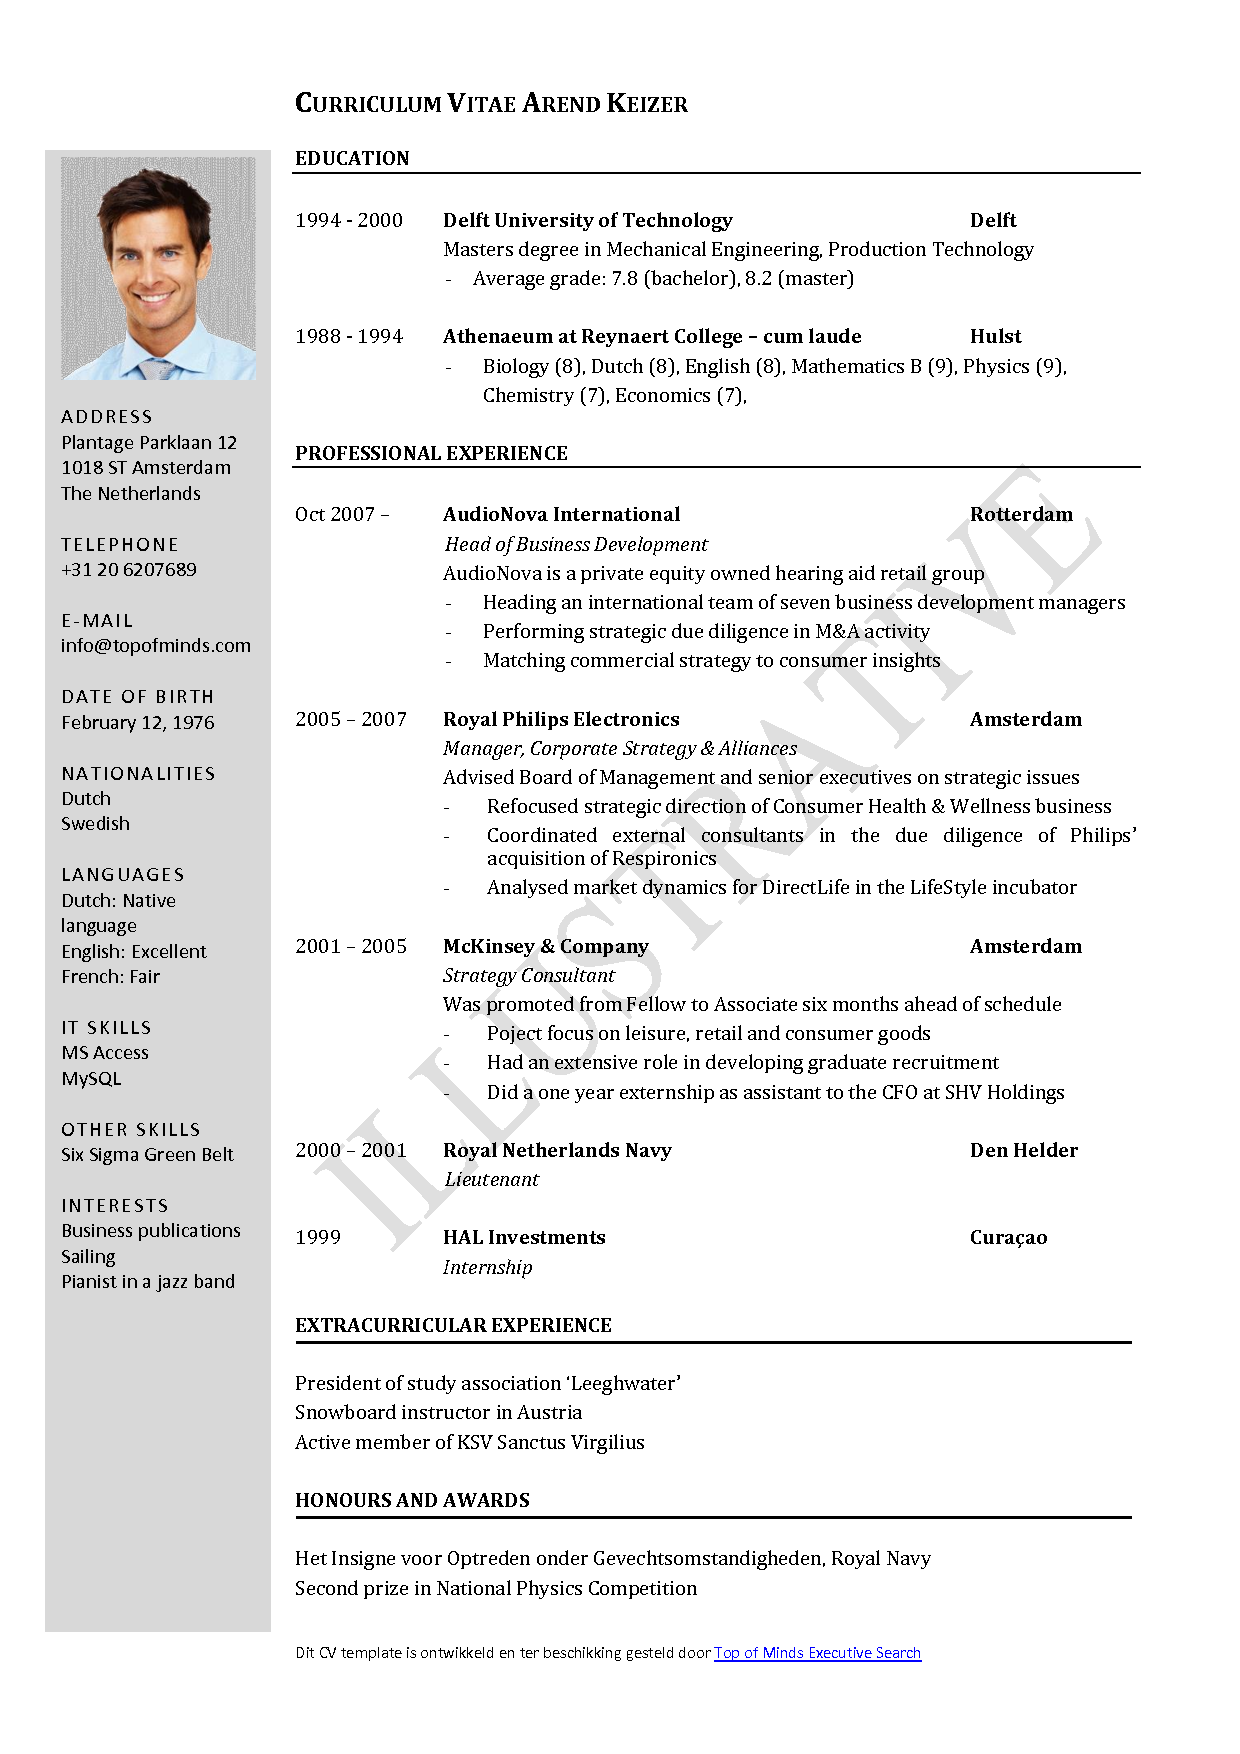 Attractive Free Curriculum Vitae Template Word | Download CV Template Regarding Downloadable Resume Templates Word